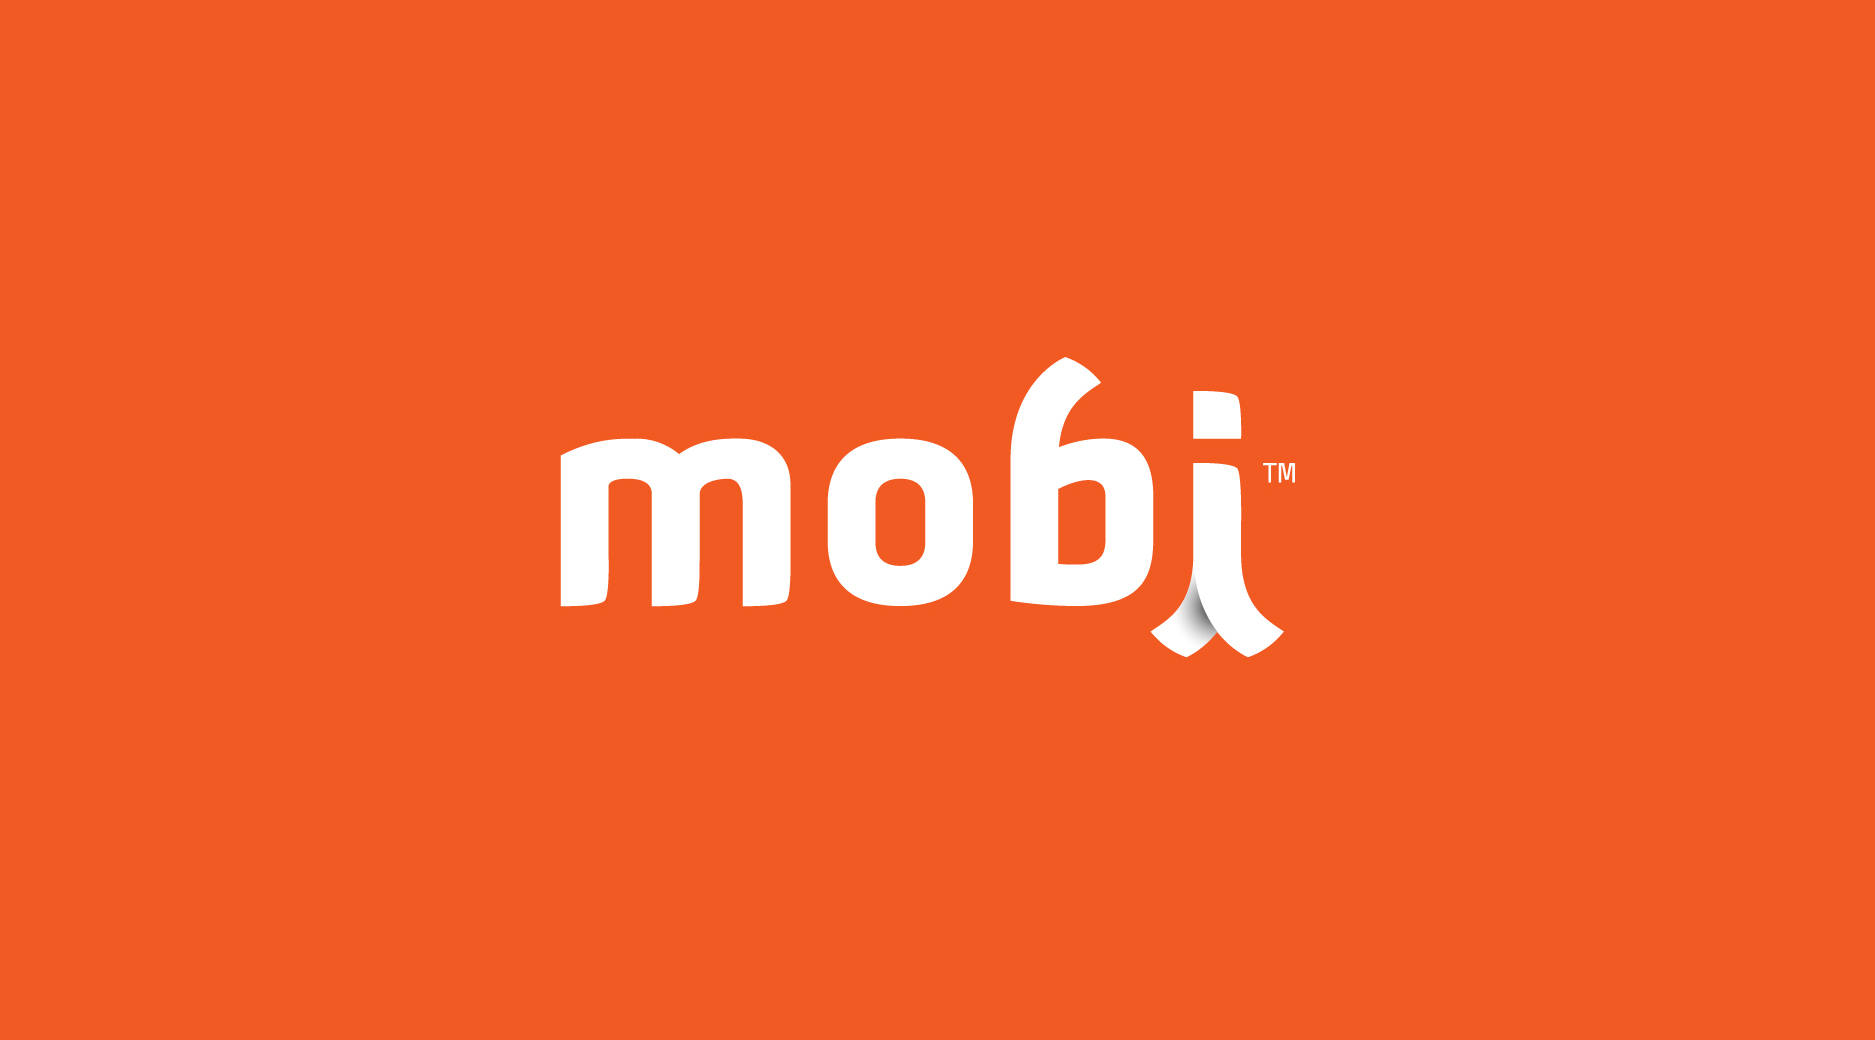 Identity for mobi a brand of patient-centric assisted mobility devices.